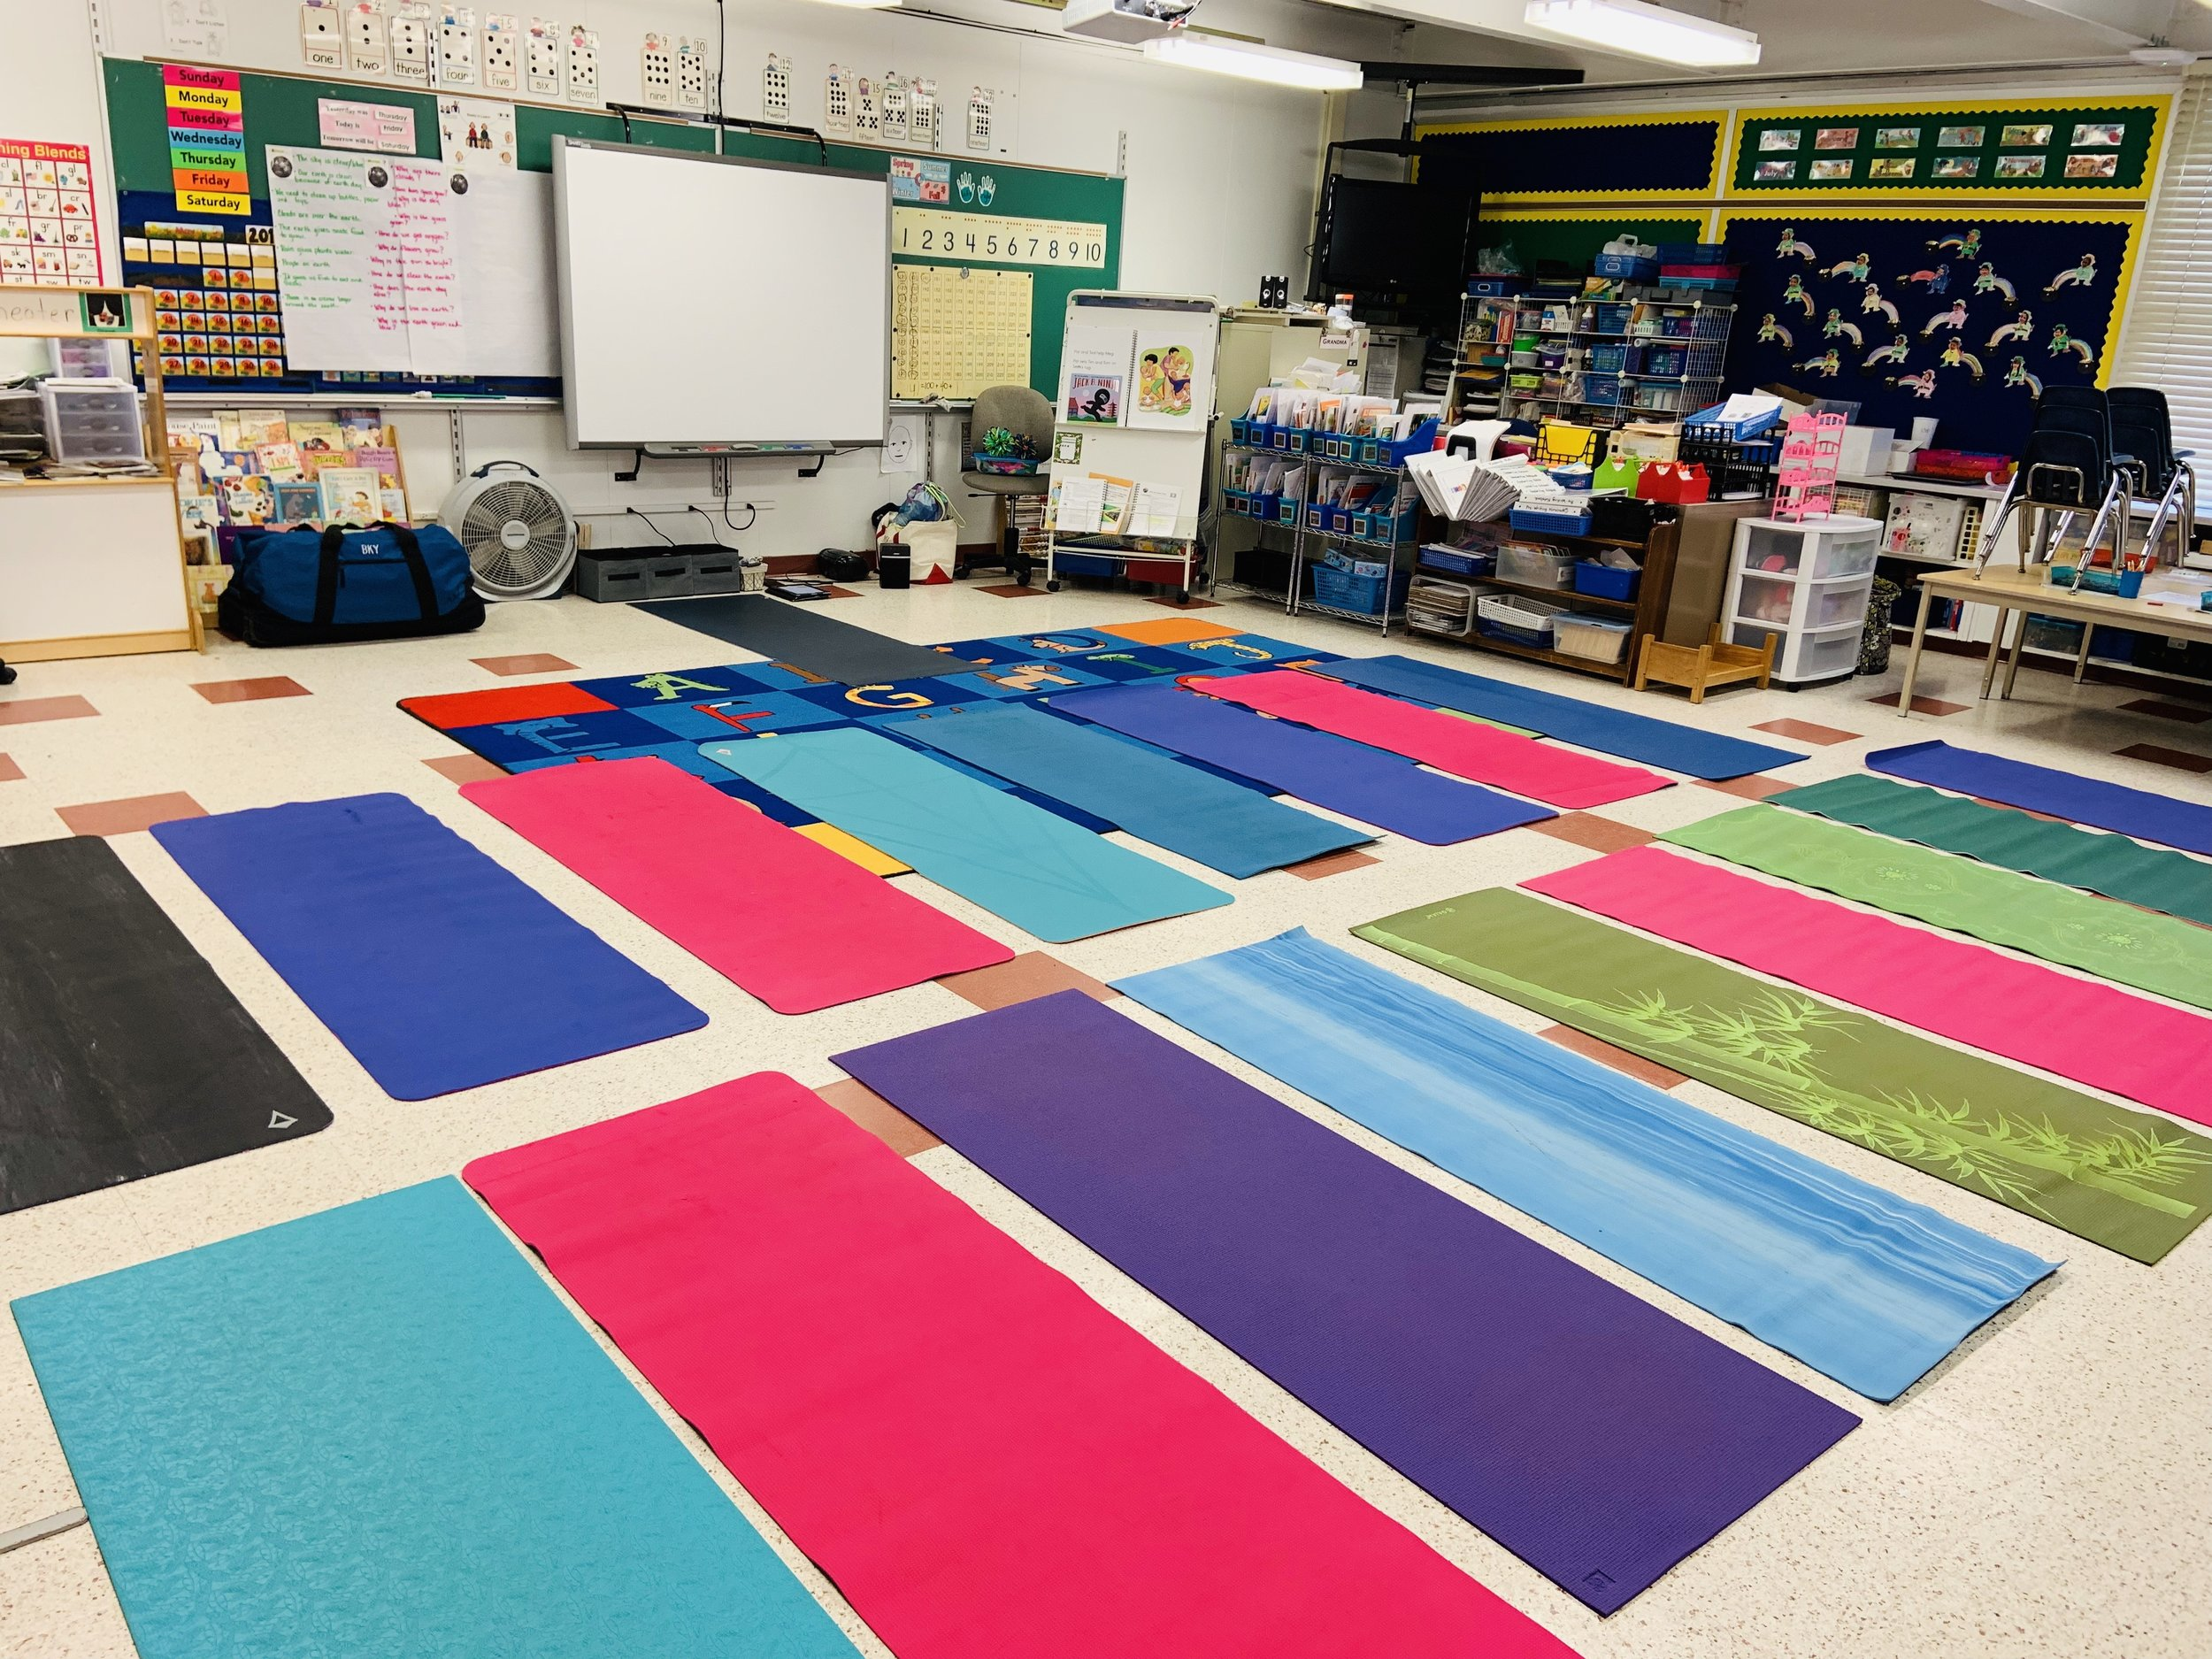 Rolling out our mats for Yoga at School — so beneficial for students!